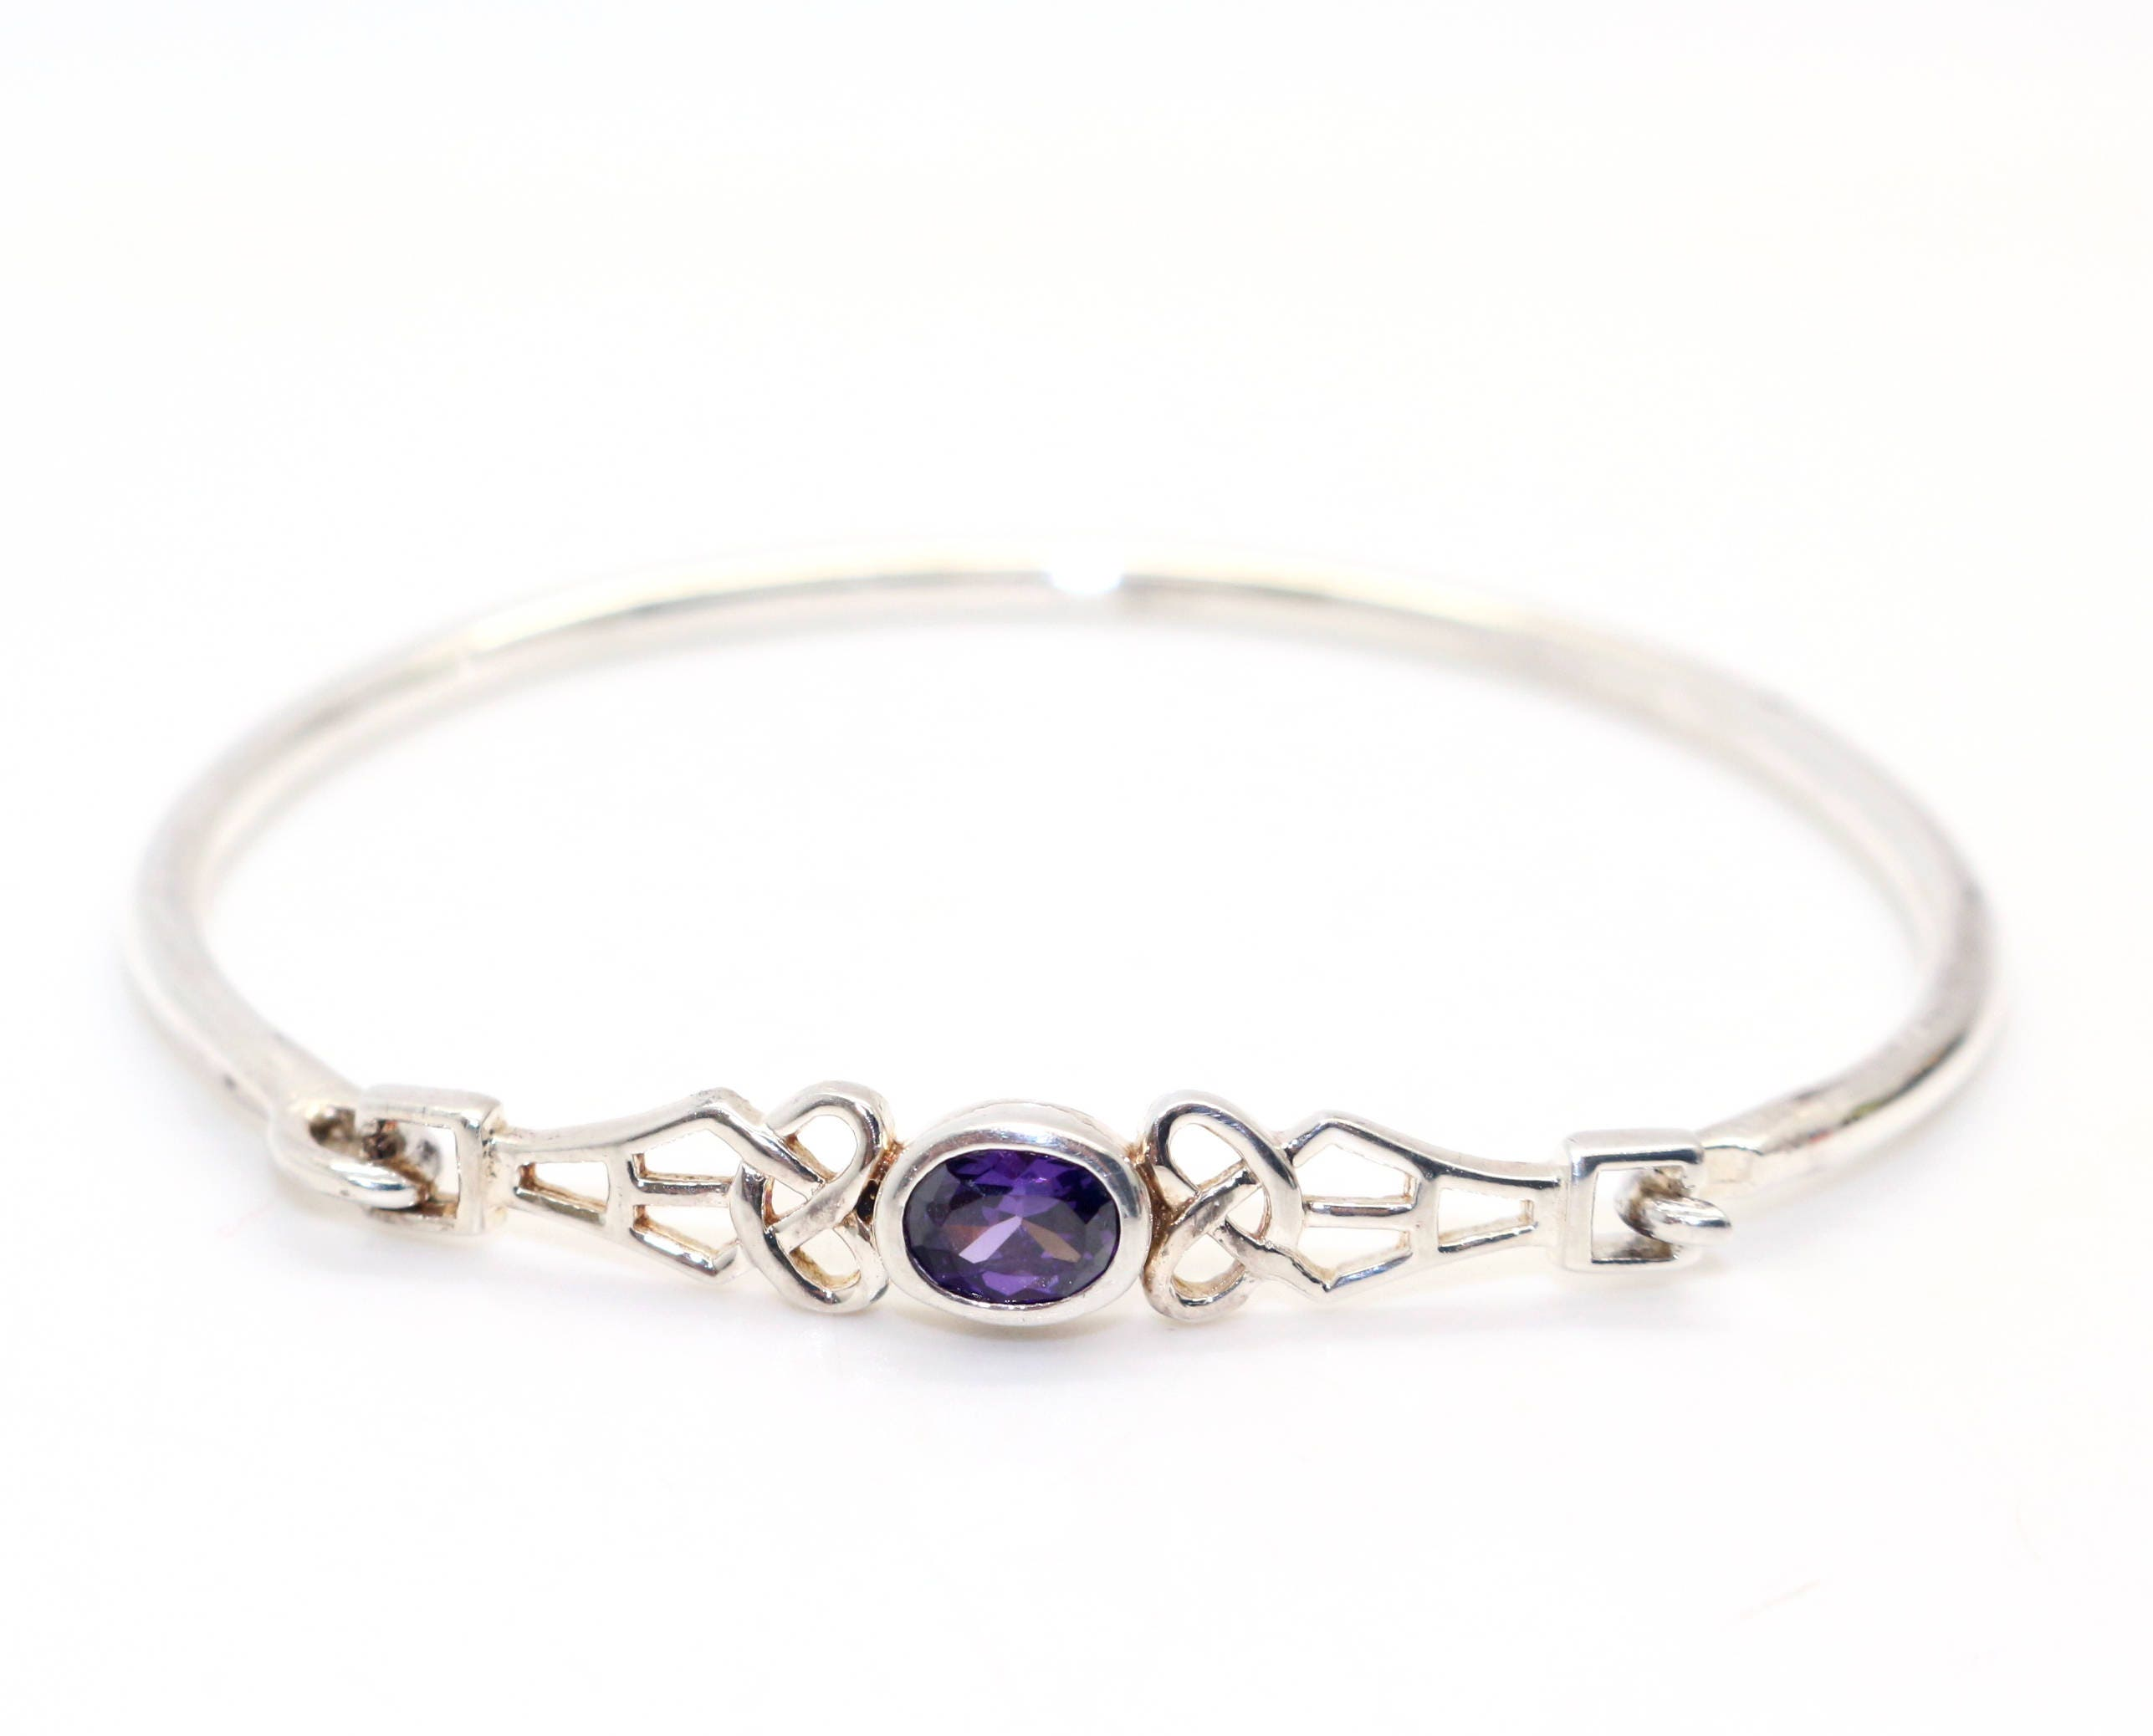 silver collections garnet franki sterling bangle smoky women bangles bracelet quartz peridot s baker jewellery amethyst bracelets